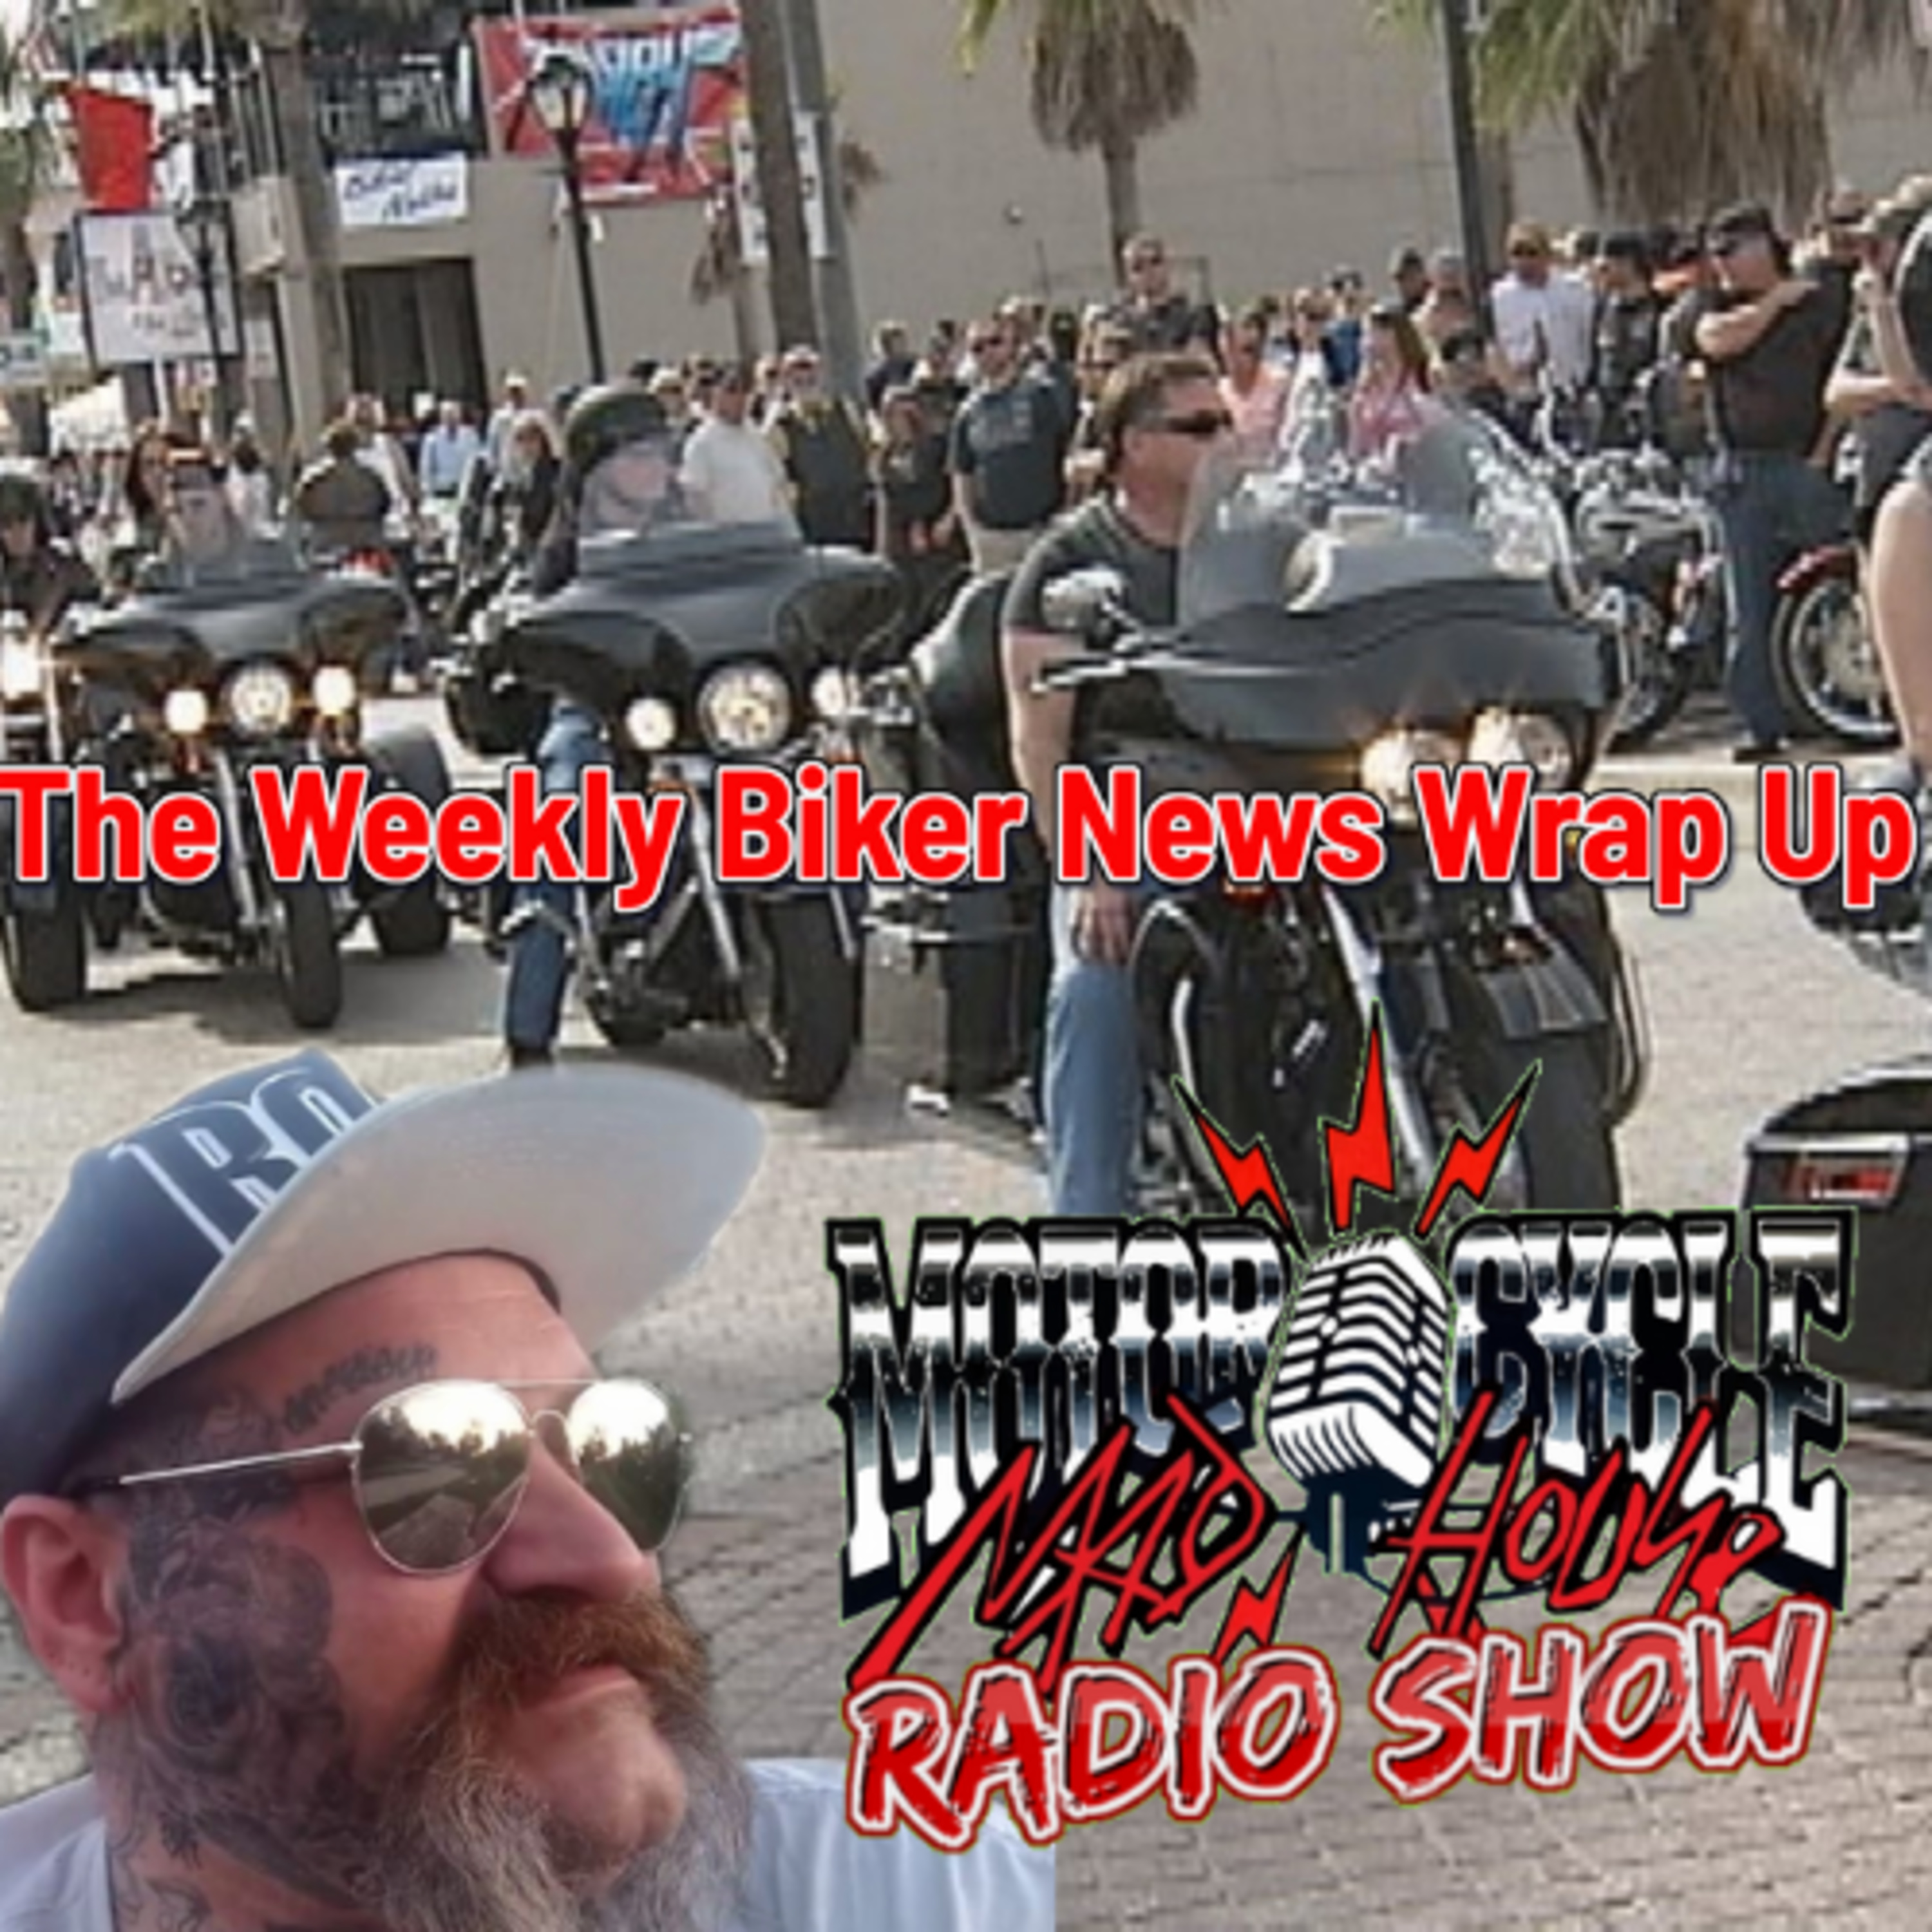 Episode 1 Premiere of The Weekly Biker News Wrap Up Motorcycle Club issues, Independent Biker Issues there is always something for everyone